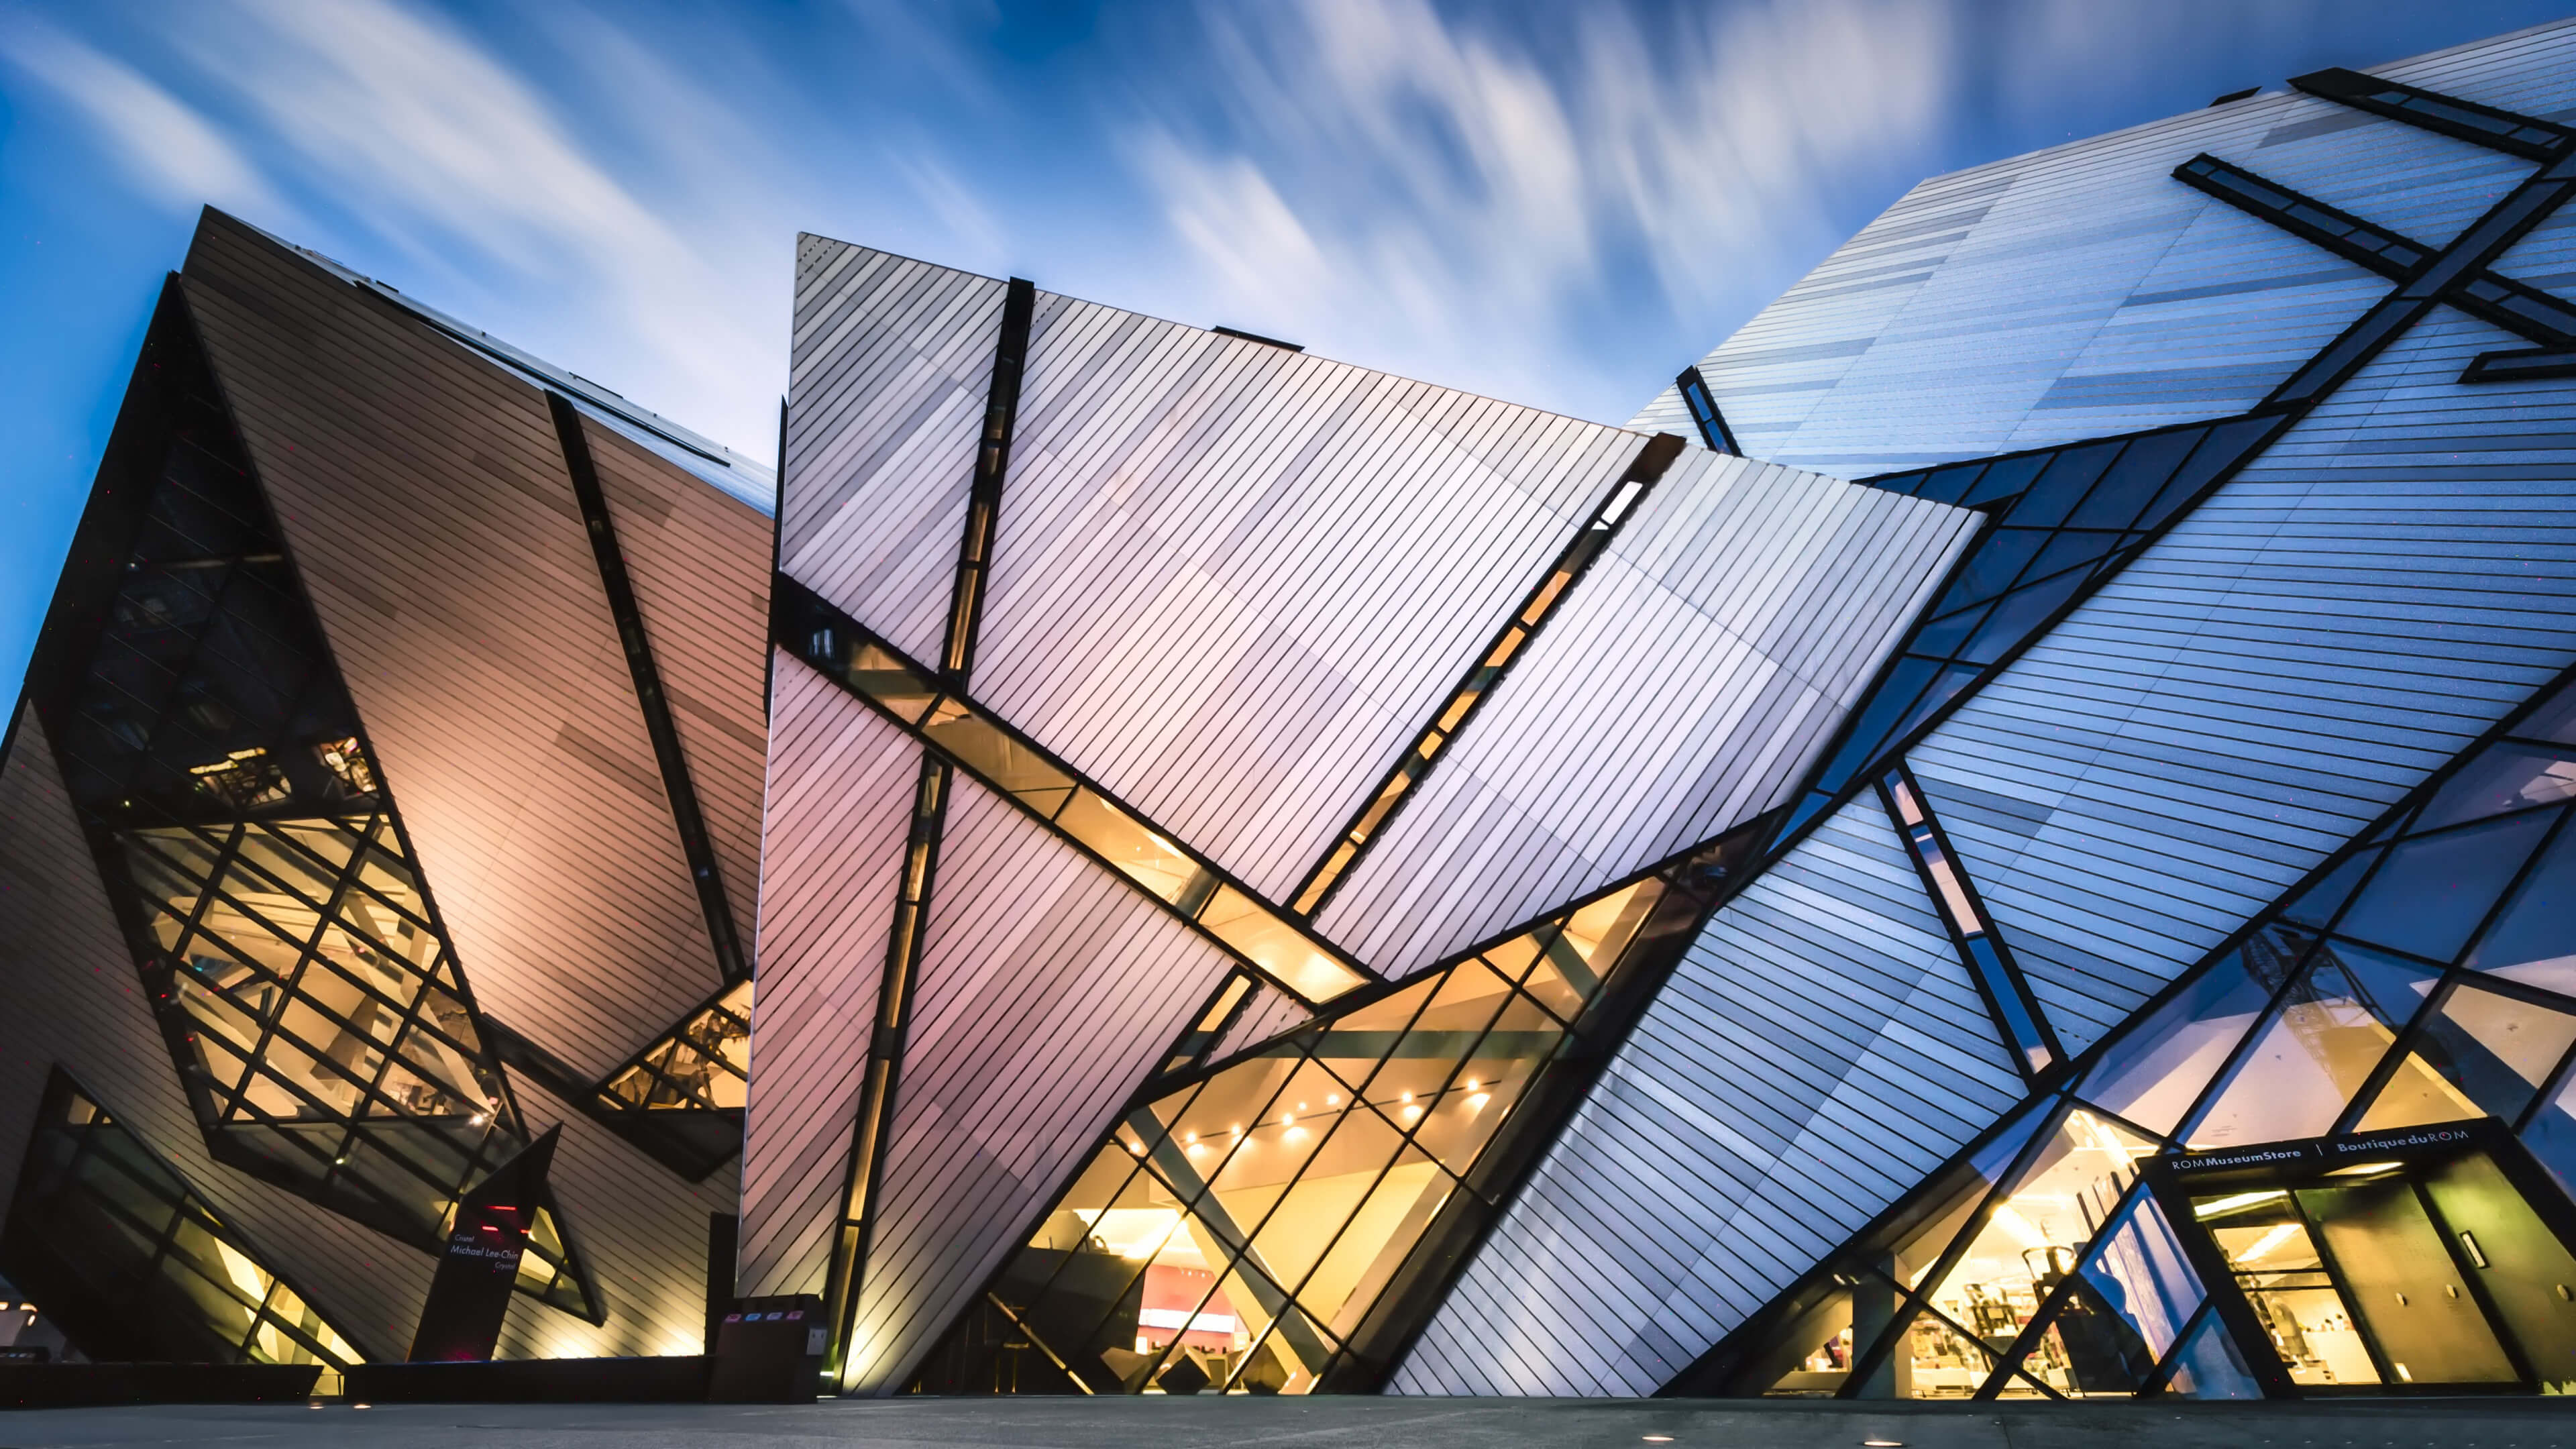 4K Wallpaper Amazing Modern Architecture images